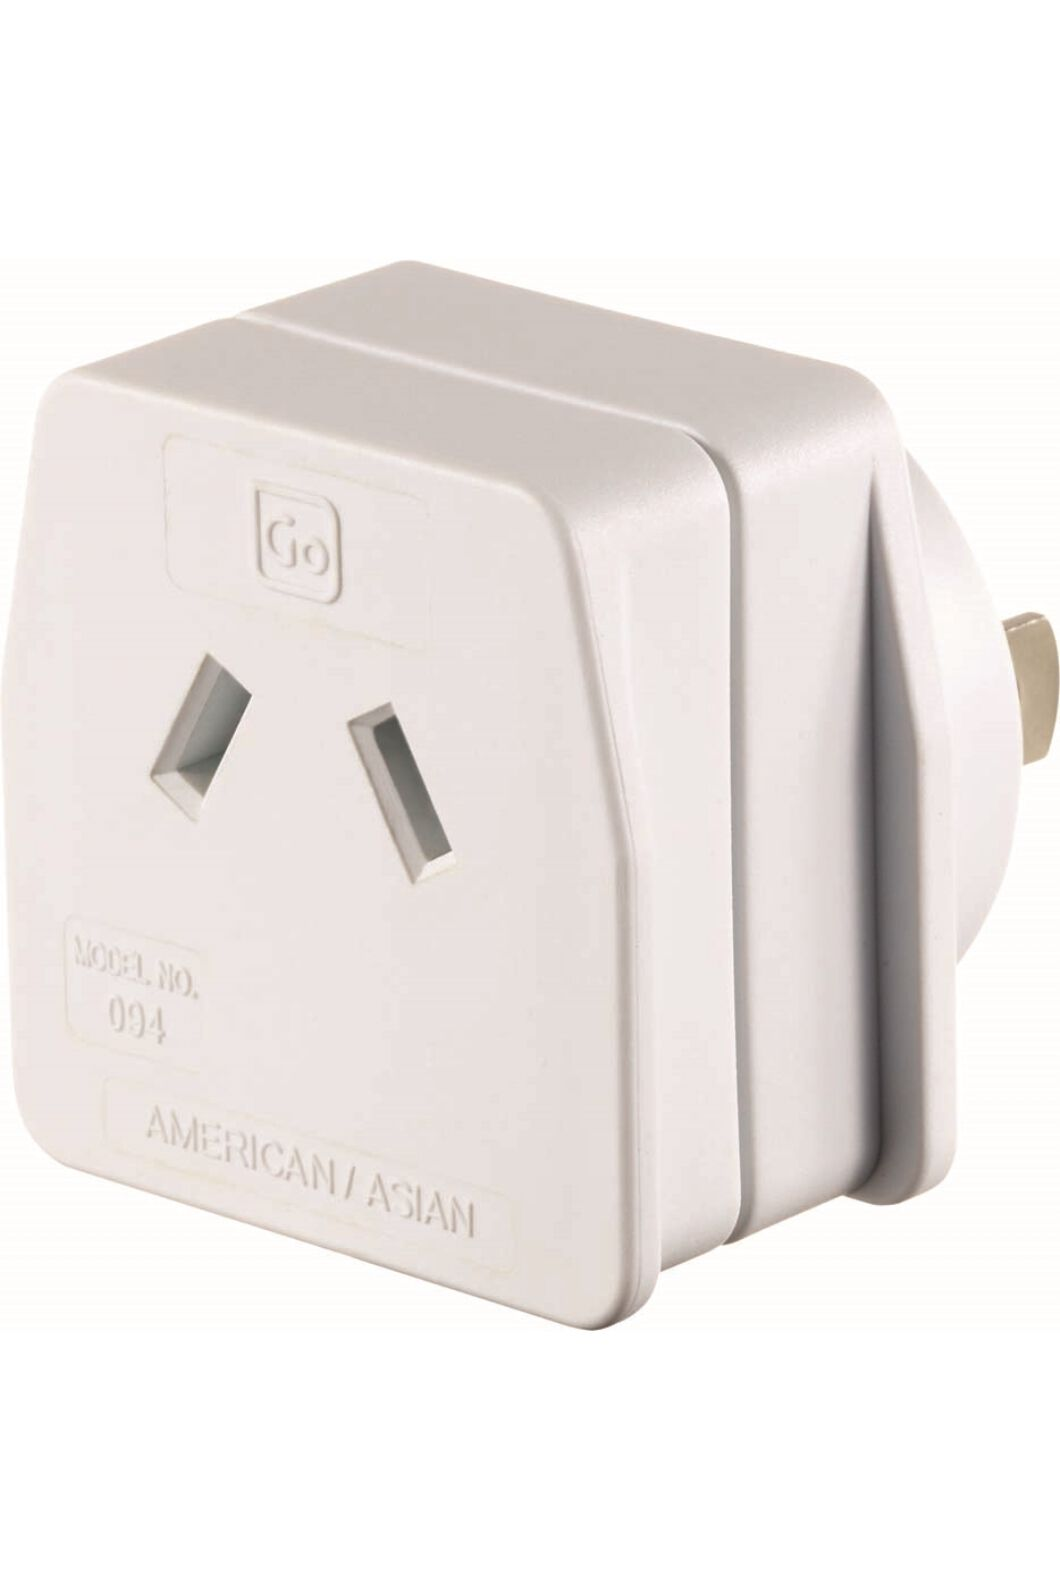 Go Travel American To Asian Travel Adaptor, None, hi-res